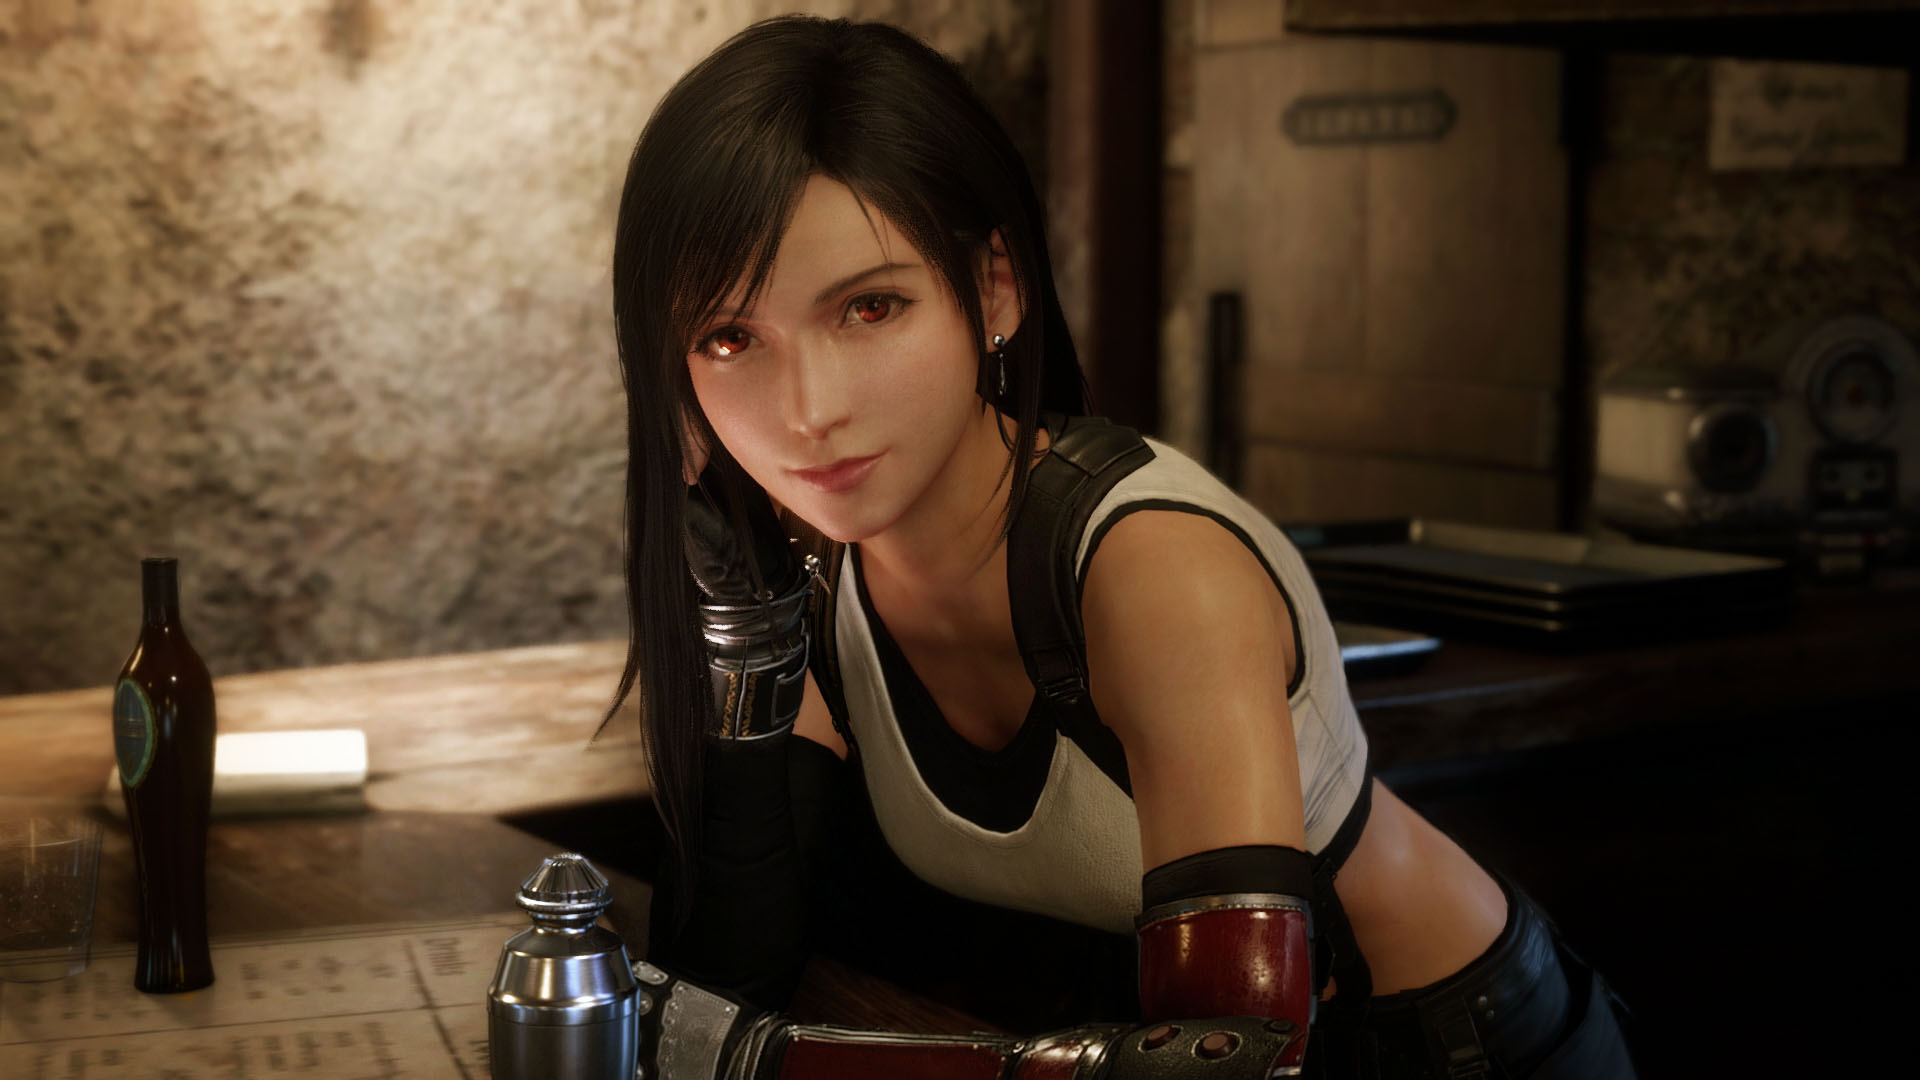 Final Fantasy 7 Remake requires 100GB on PS4 - VG247